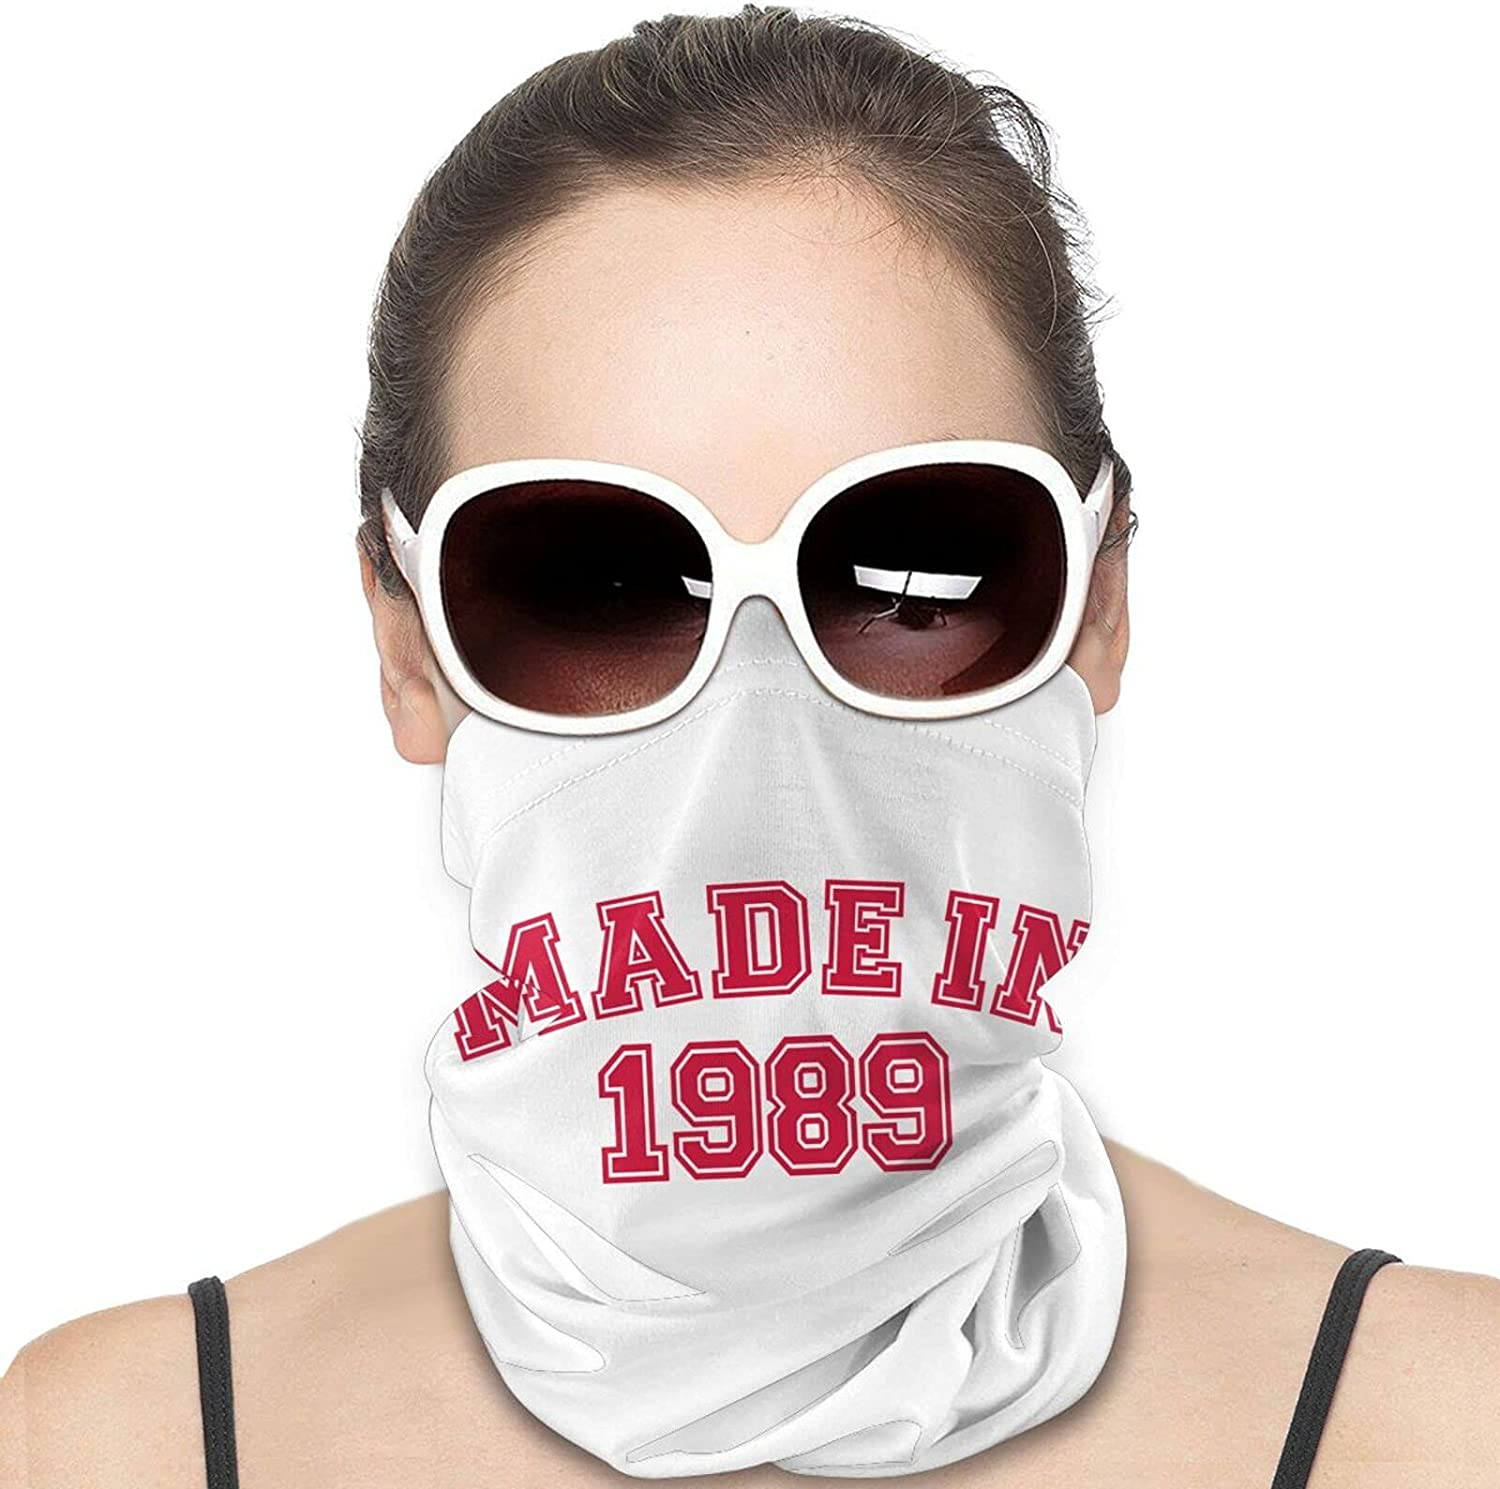 Made in 1989 Round Neck Gaiter Bandnas Face Cover Uv Protection Prevent bask in Ice Scarf Headbands Perfect for Motorcycle Cycling Running Festival Raves Outdoors